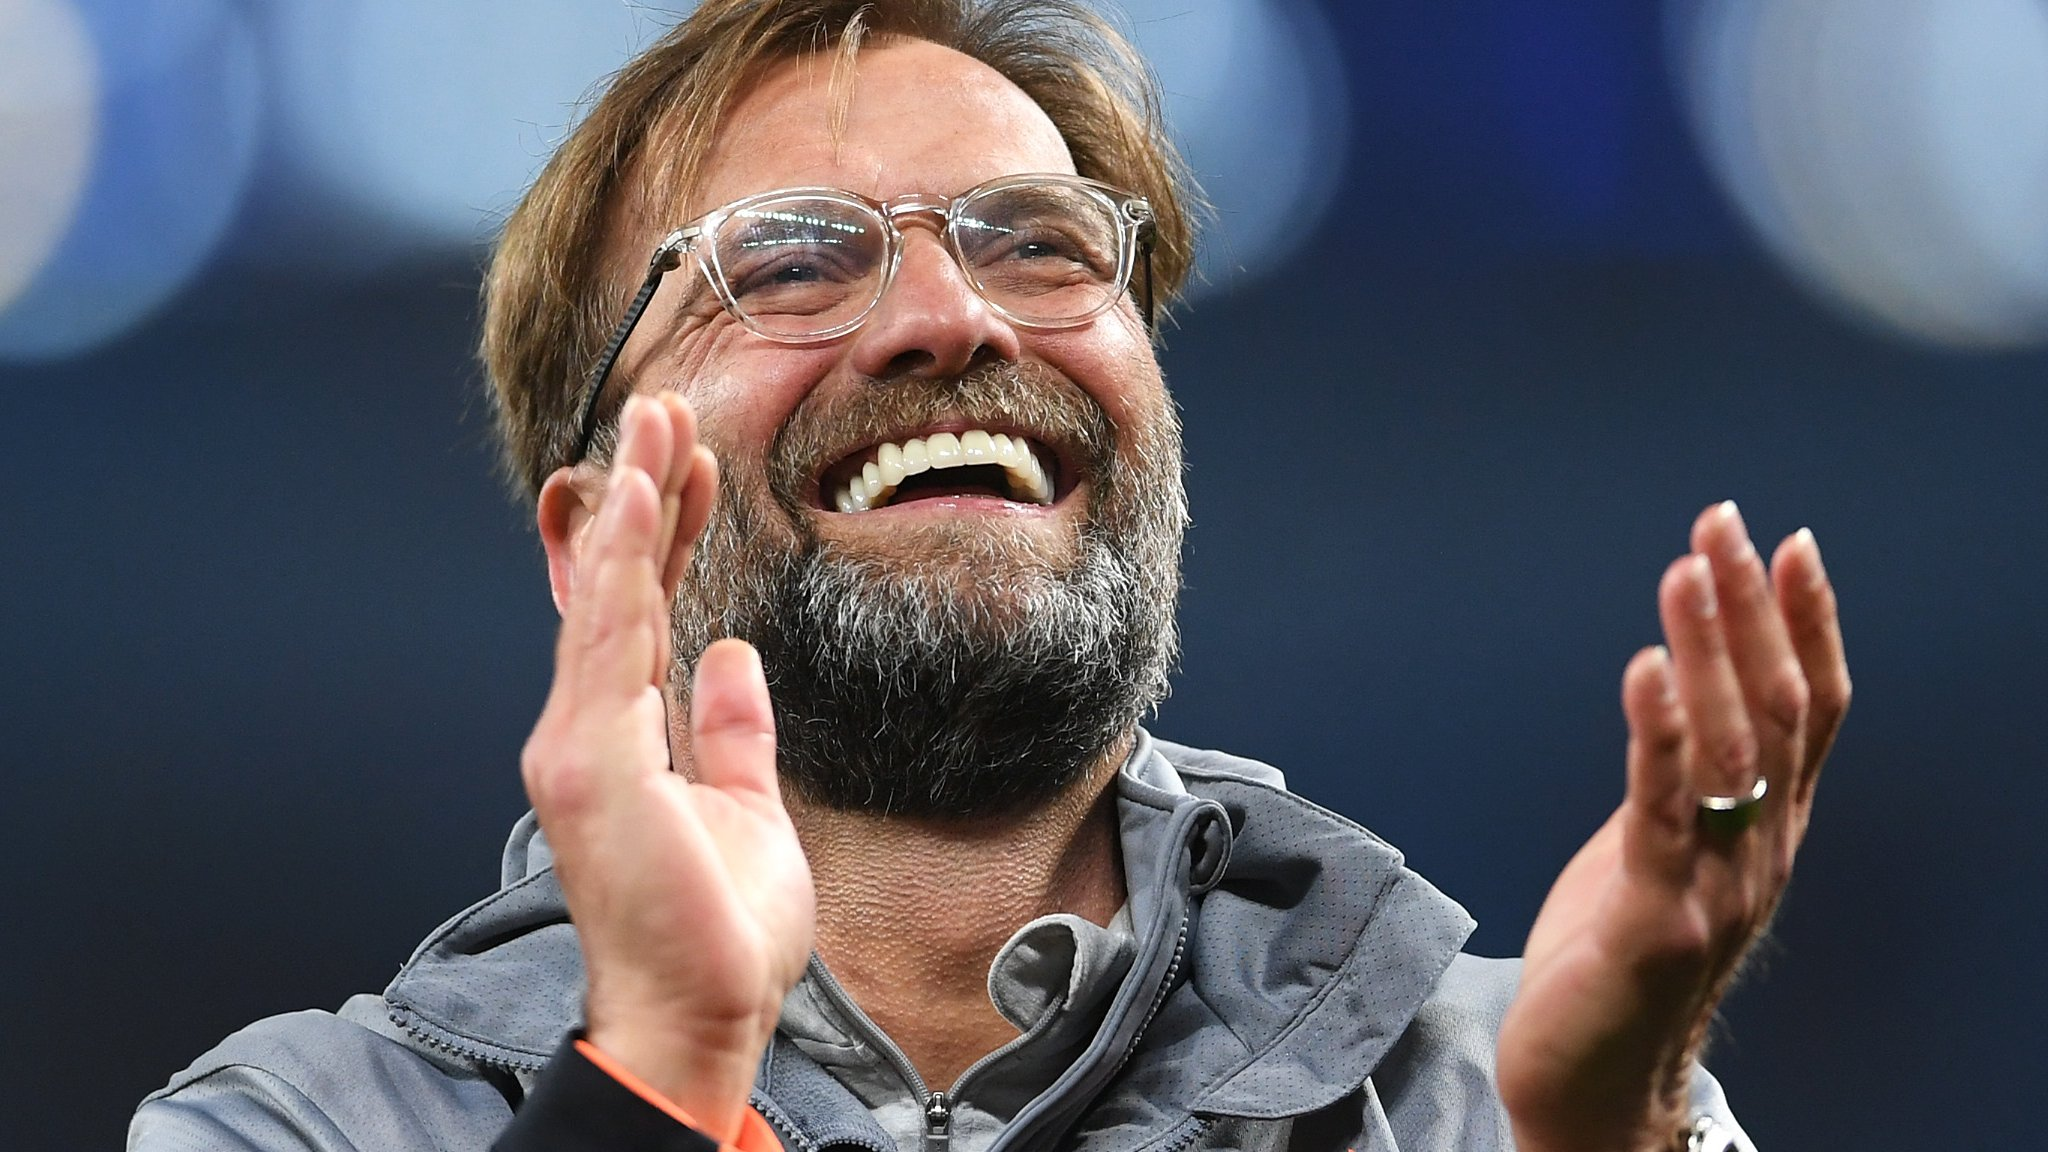 A demanding father and a radical coach - the making of Jurgen Klopp